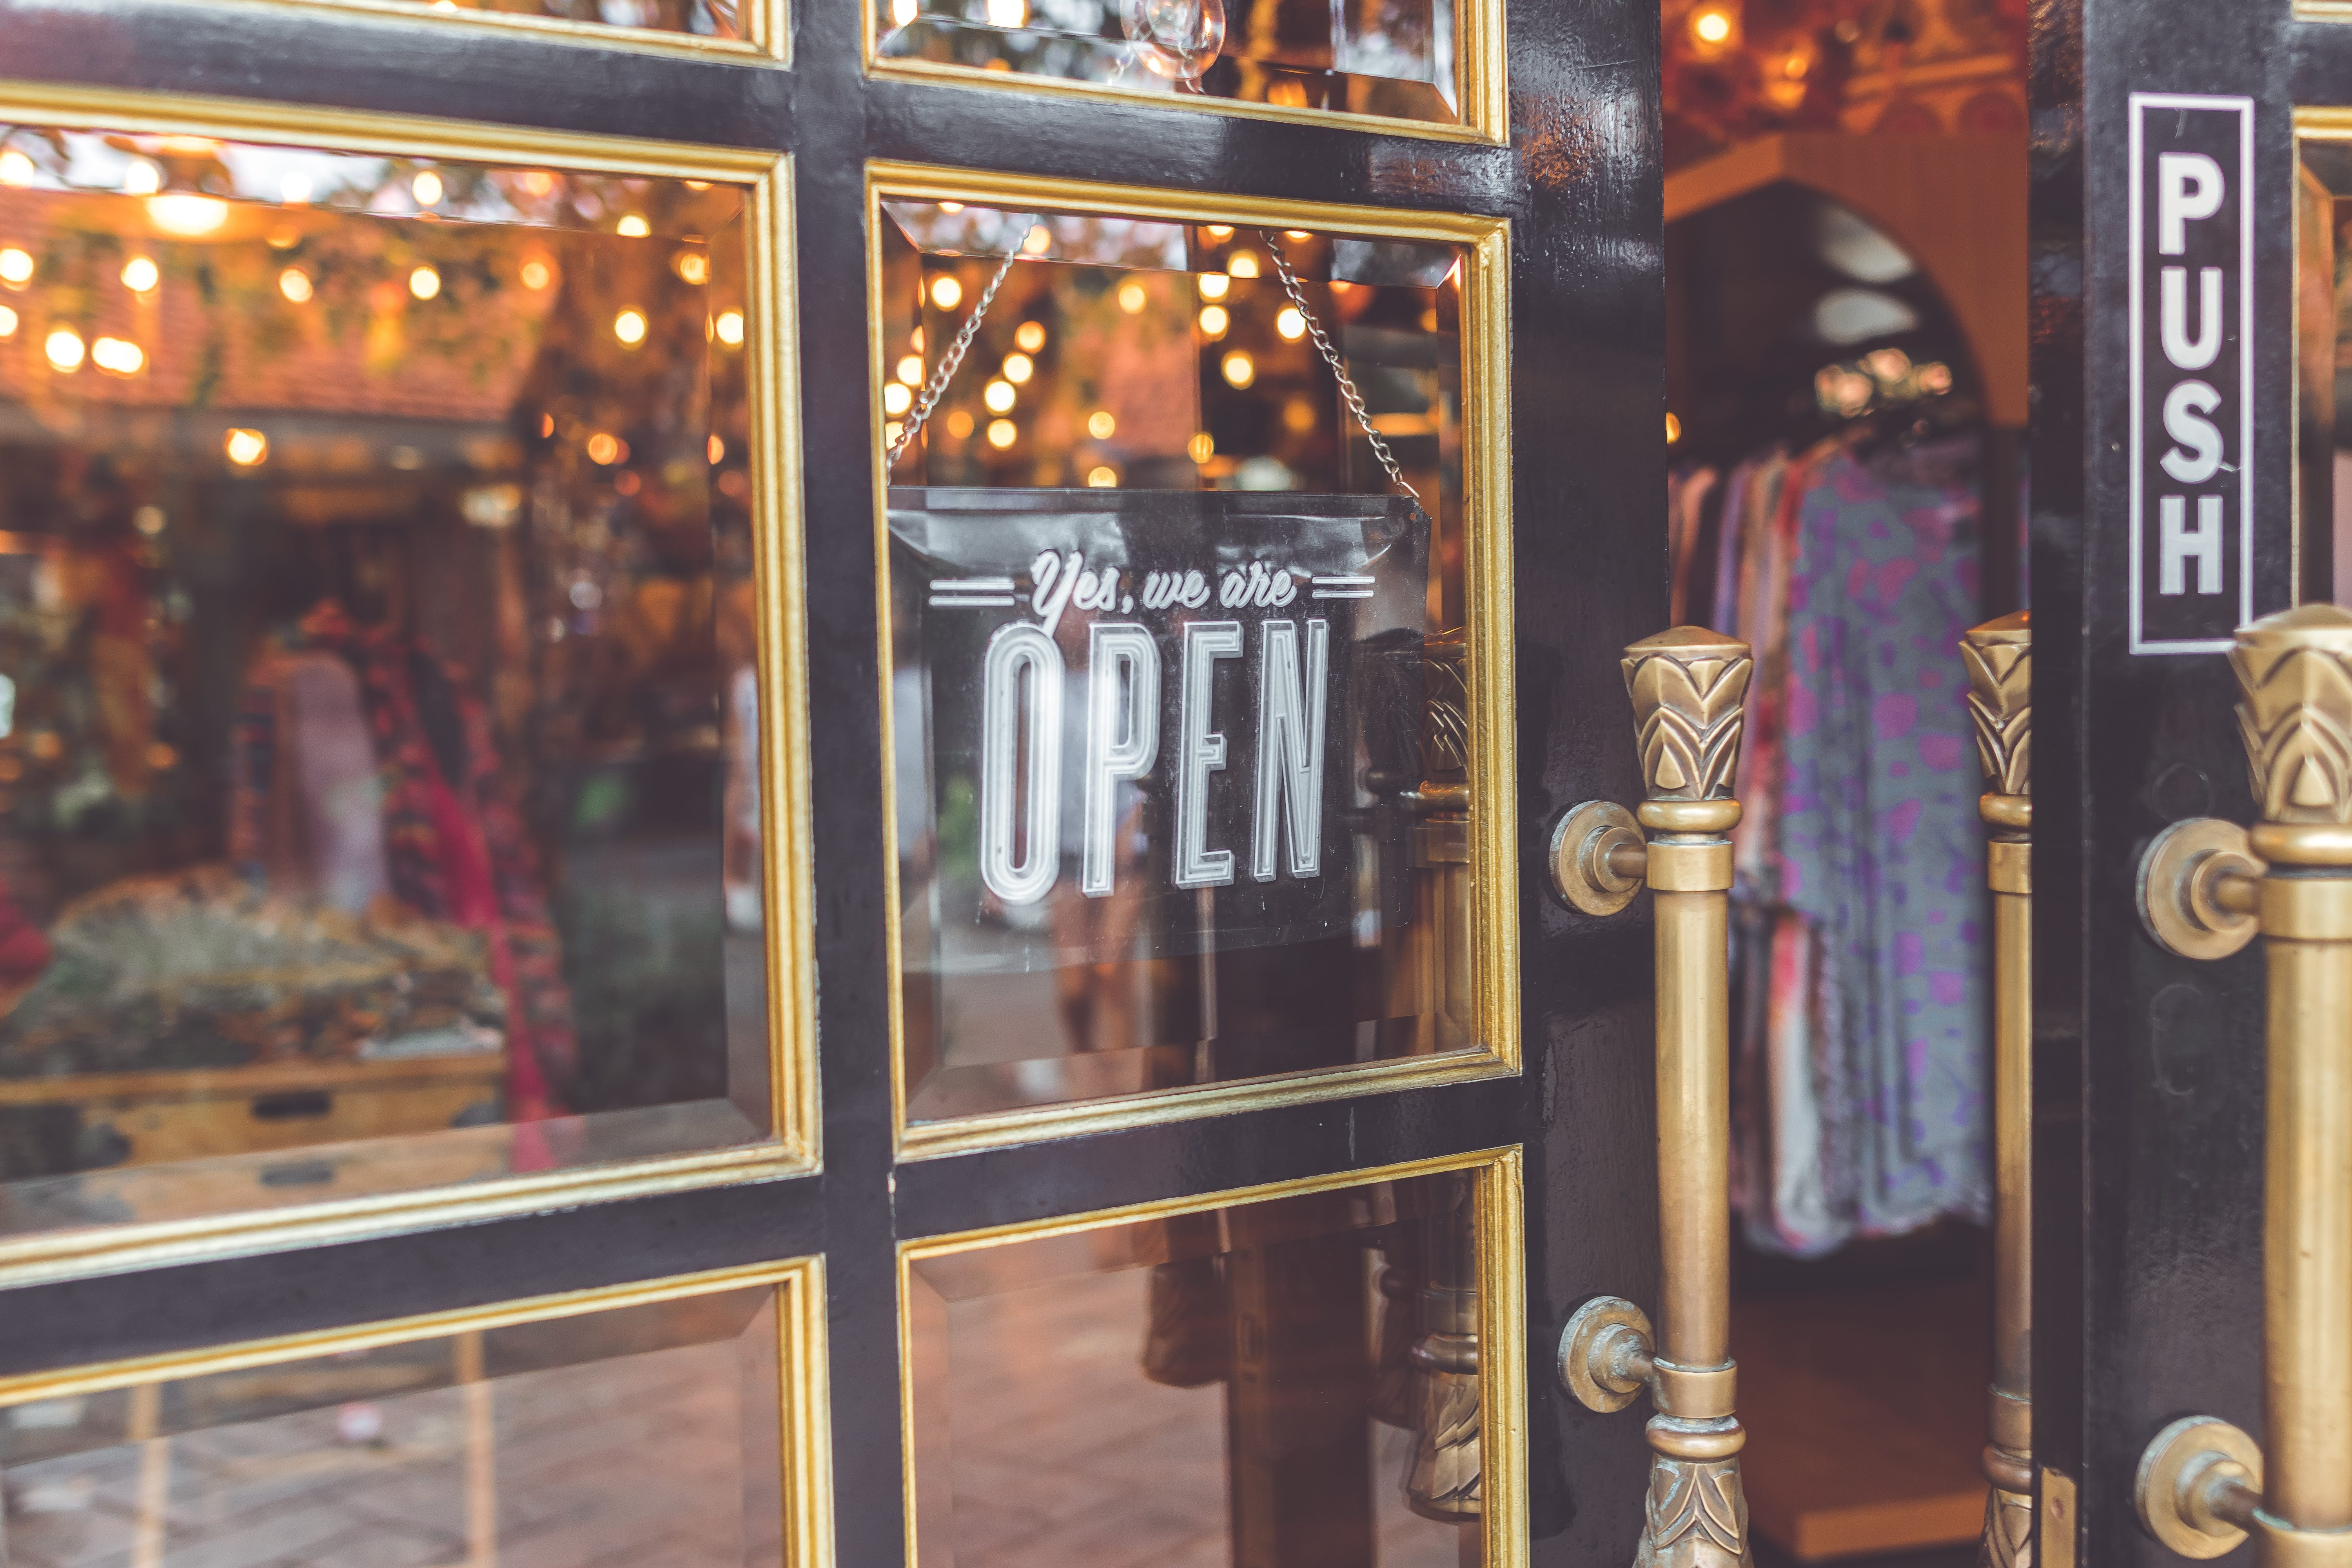 """Shopfront with sign in window saying """"Yes, We Are Open;"""" image by Artem Bali, via unsplash.com."""